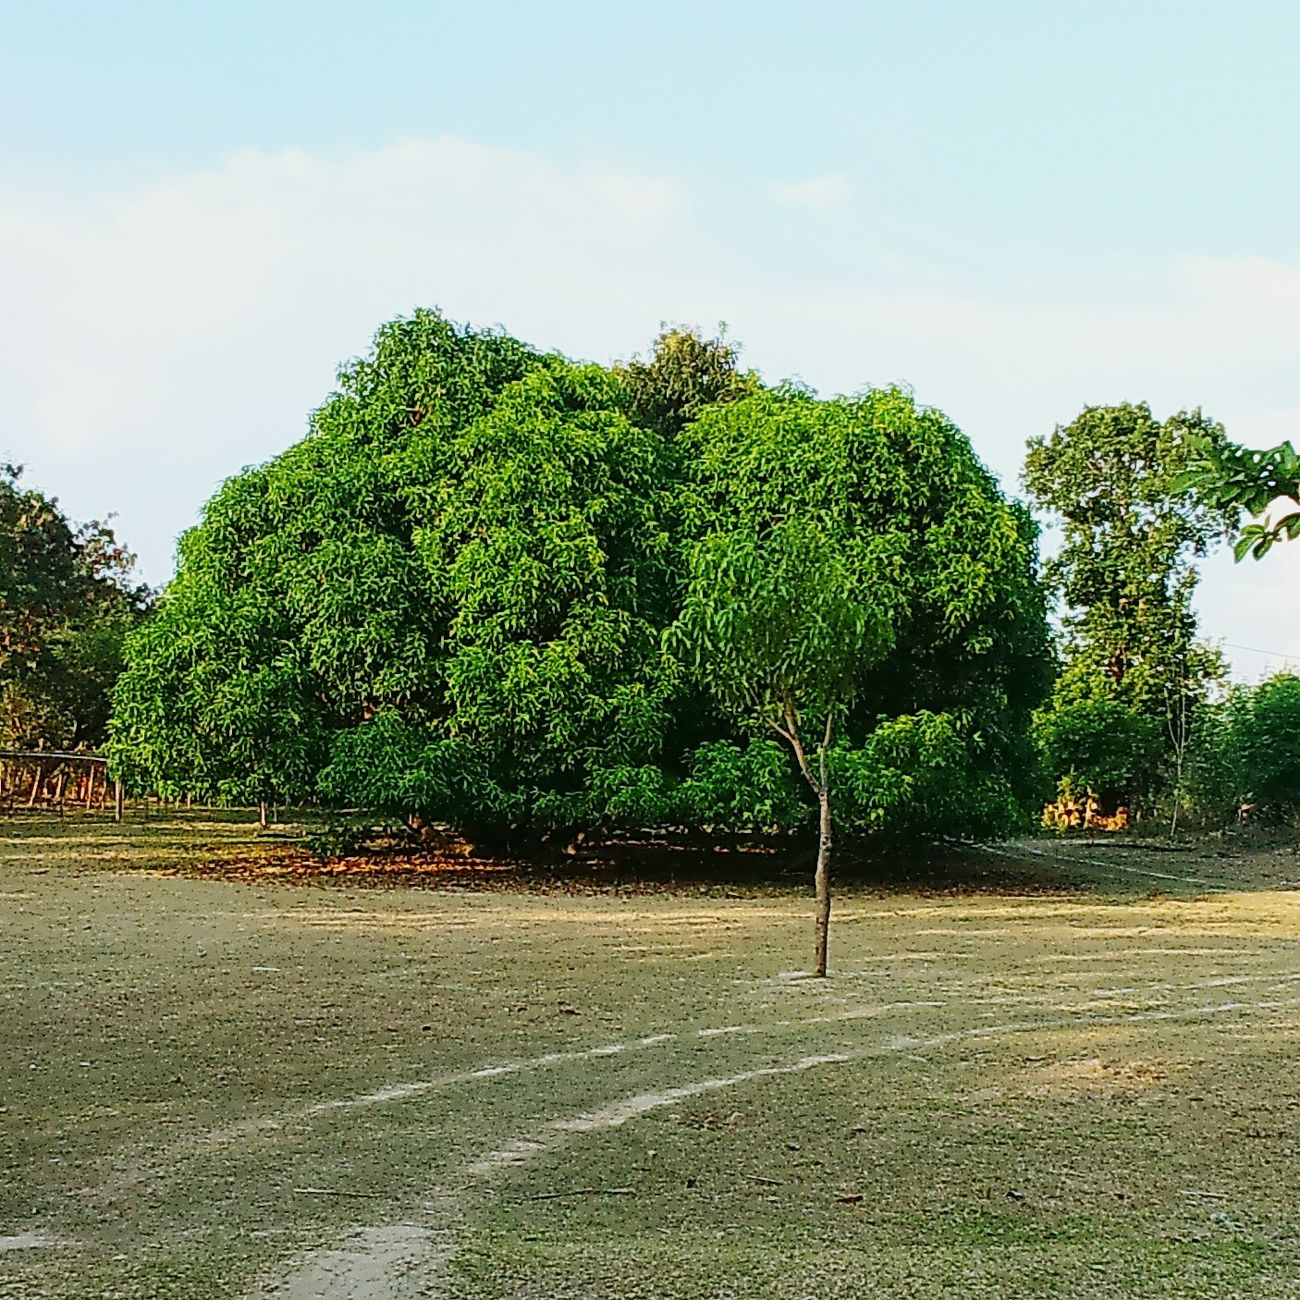 Big Mango Tree 🌳 Nature Things That Are Green Phontography Landscape_photography